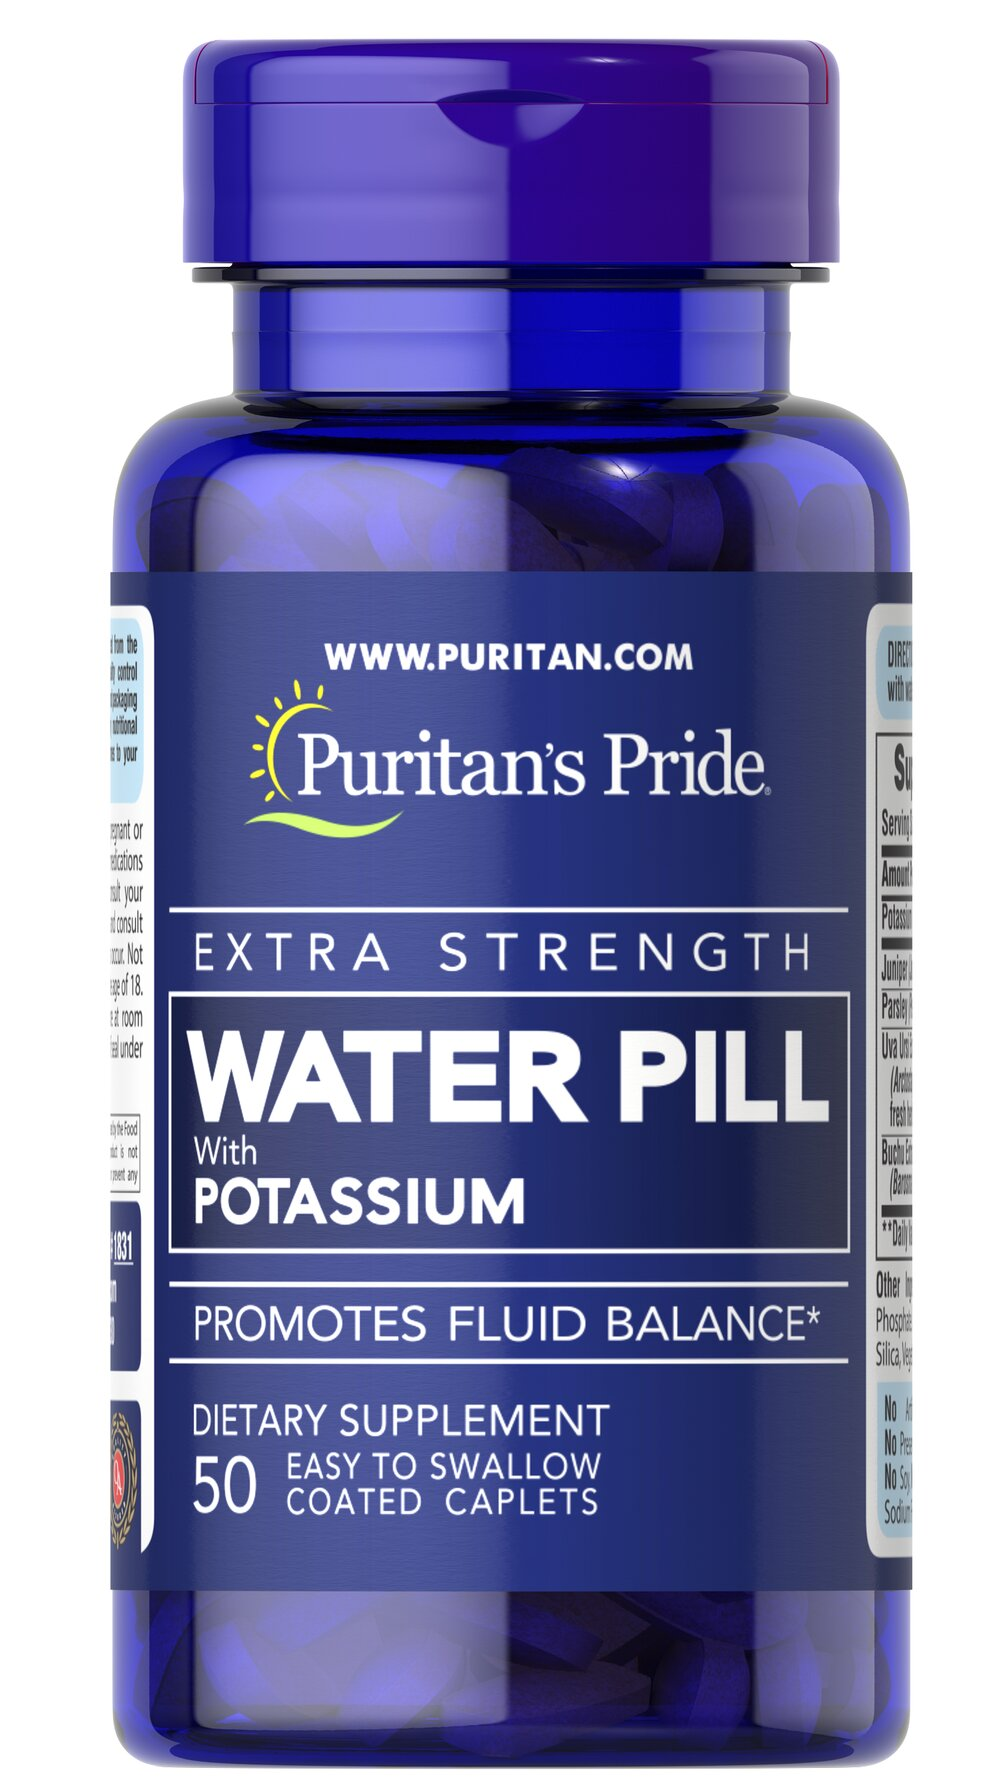 Extra Strength Water Pill™ <p>Promotes Fluid Balance**</p><p>This product contains the essential mineral Potassium, which works with sodium to regulate the body's water balance.** EXTRA STRENGTH WATER PILL™ Tablets also contain Uva Ursi, Buchu, Juniper and Parsley.</p> 50 Caplets  $5.24